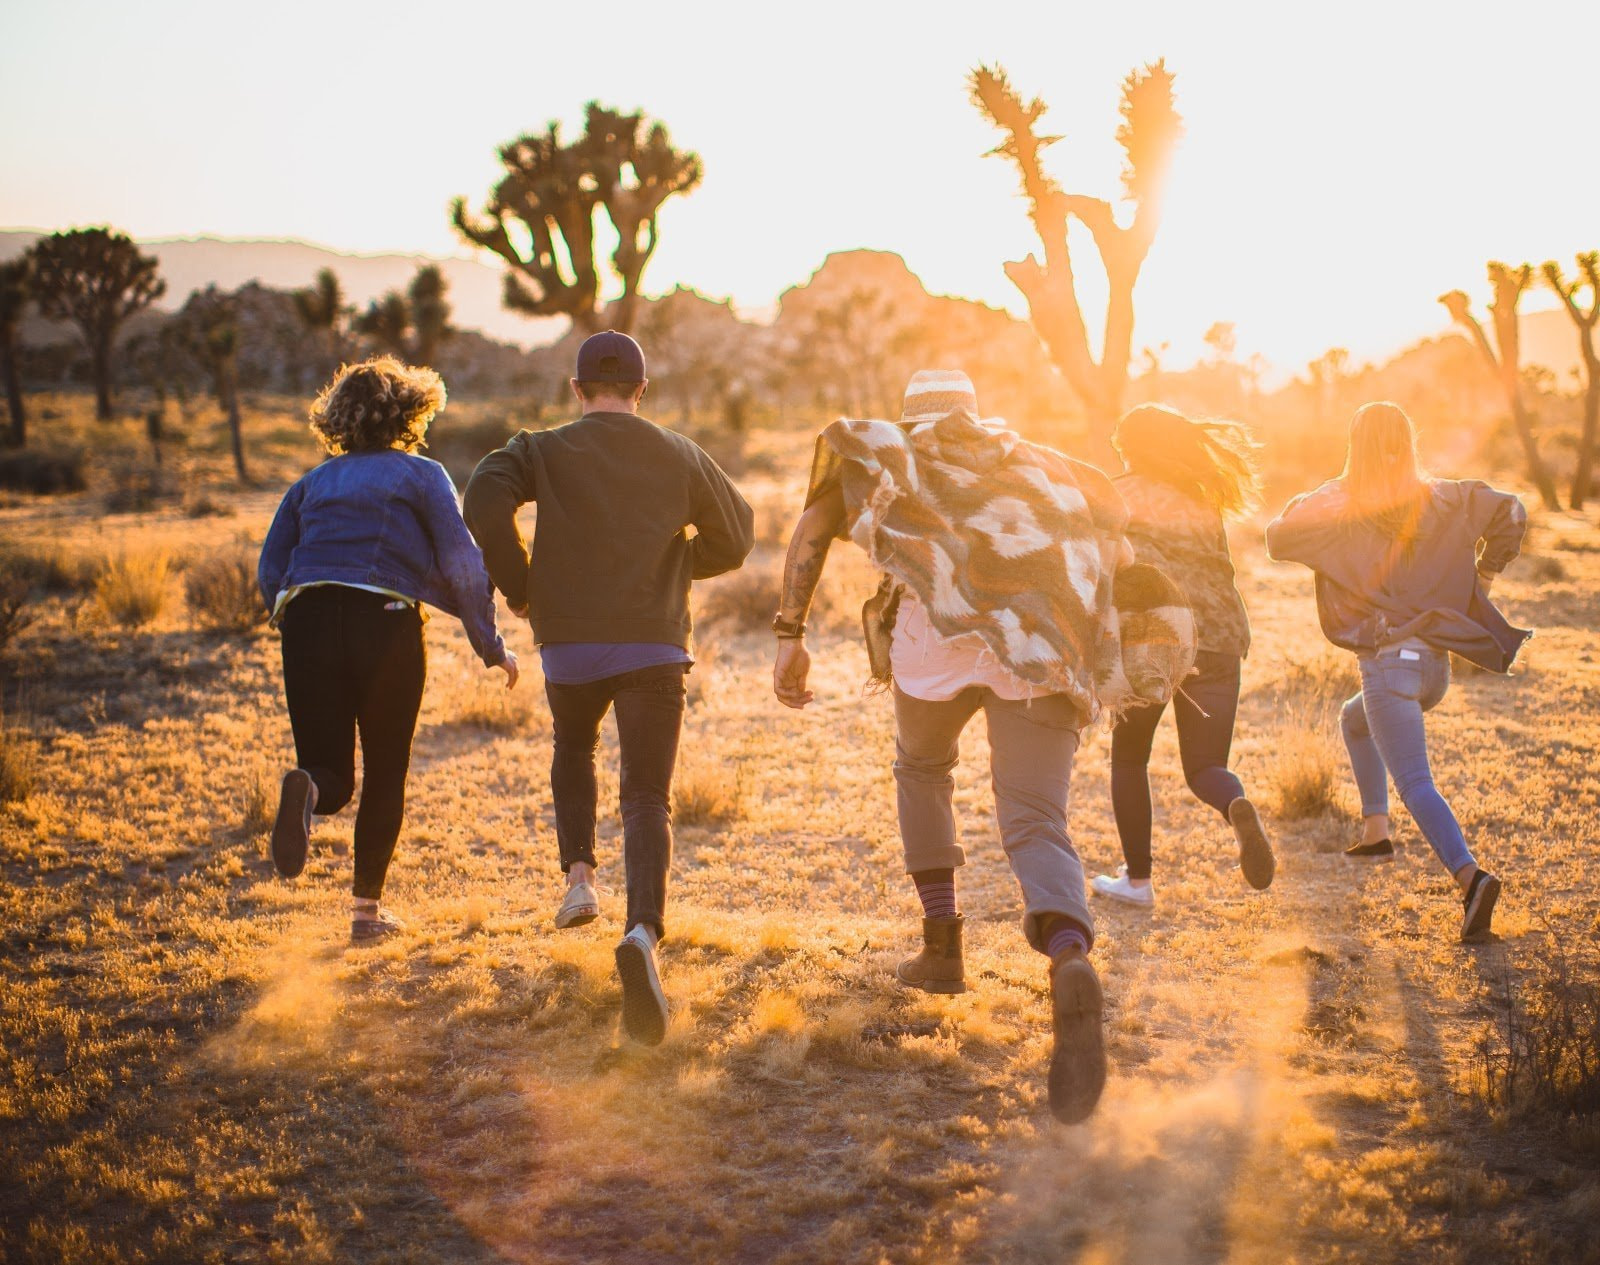 A group of friends running through a field during the golden hour by Jed Villejo